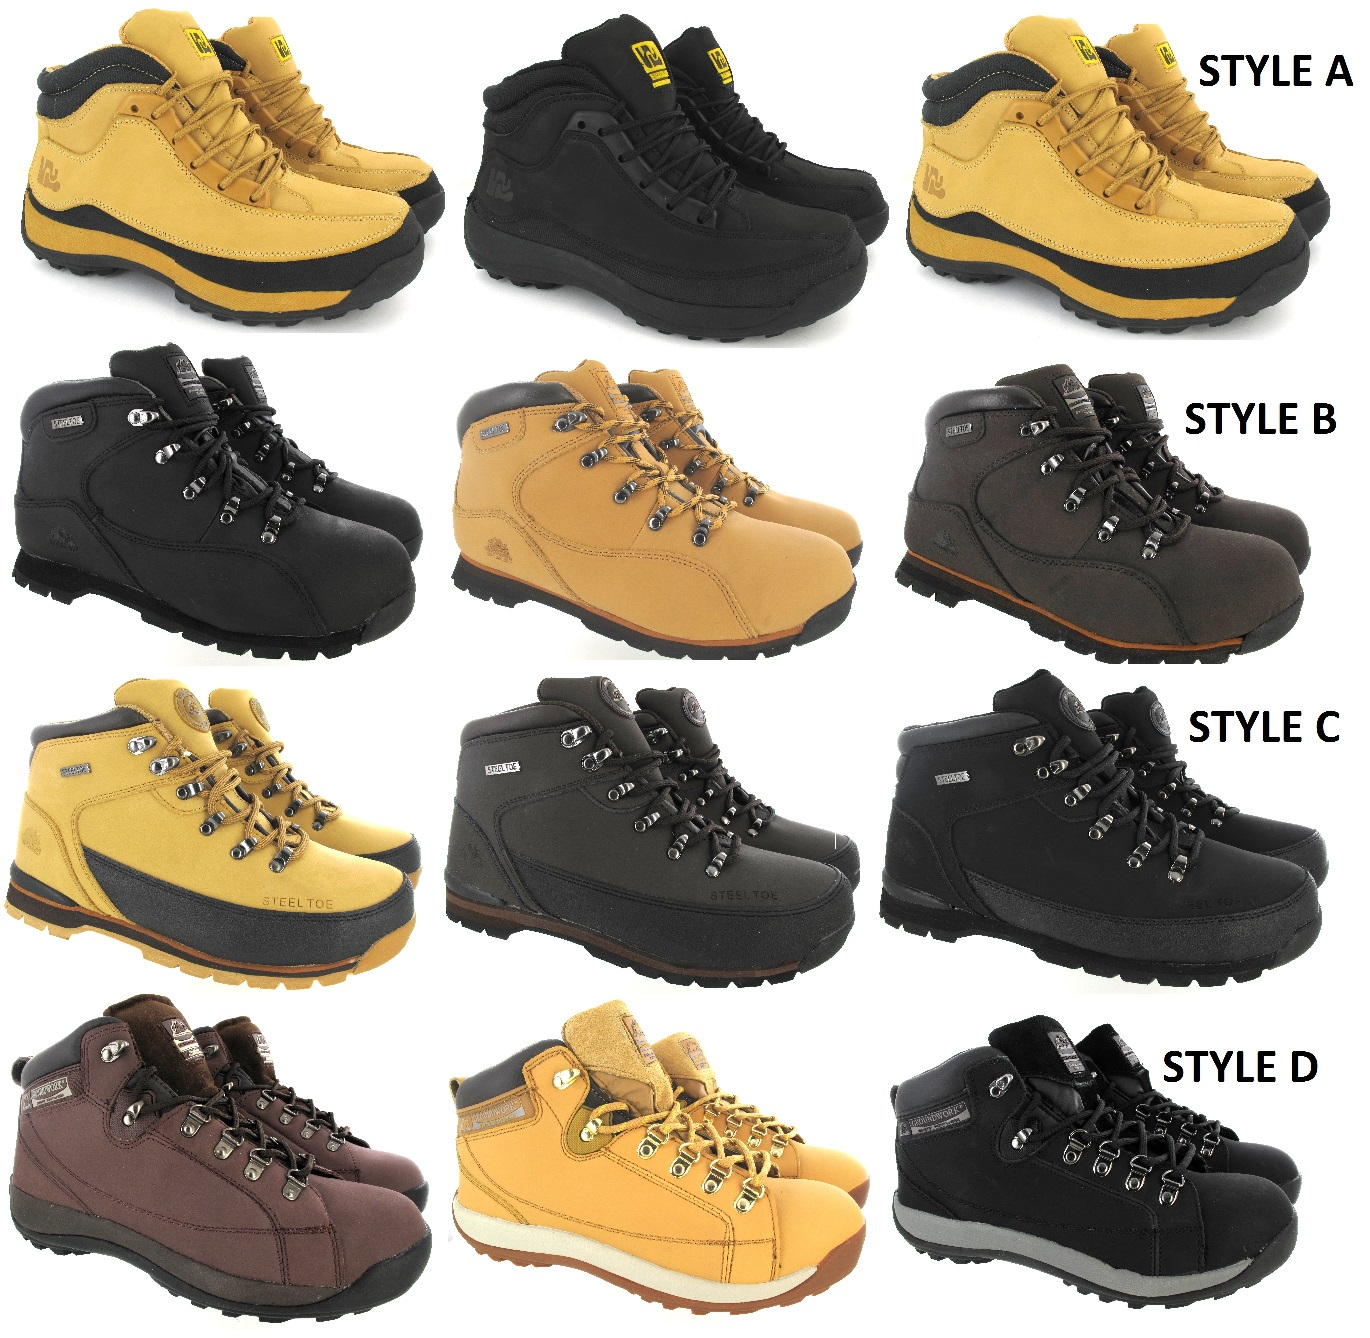 MEN/'S SAFETY STEEL TOE CAP WORK HIKING ANKLE HIKING TRAINERS BOOTS SHOES SZ 6-12